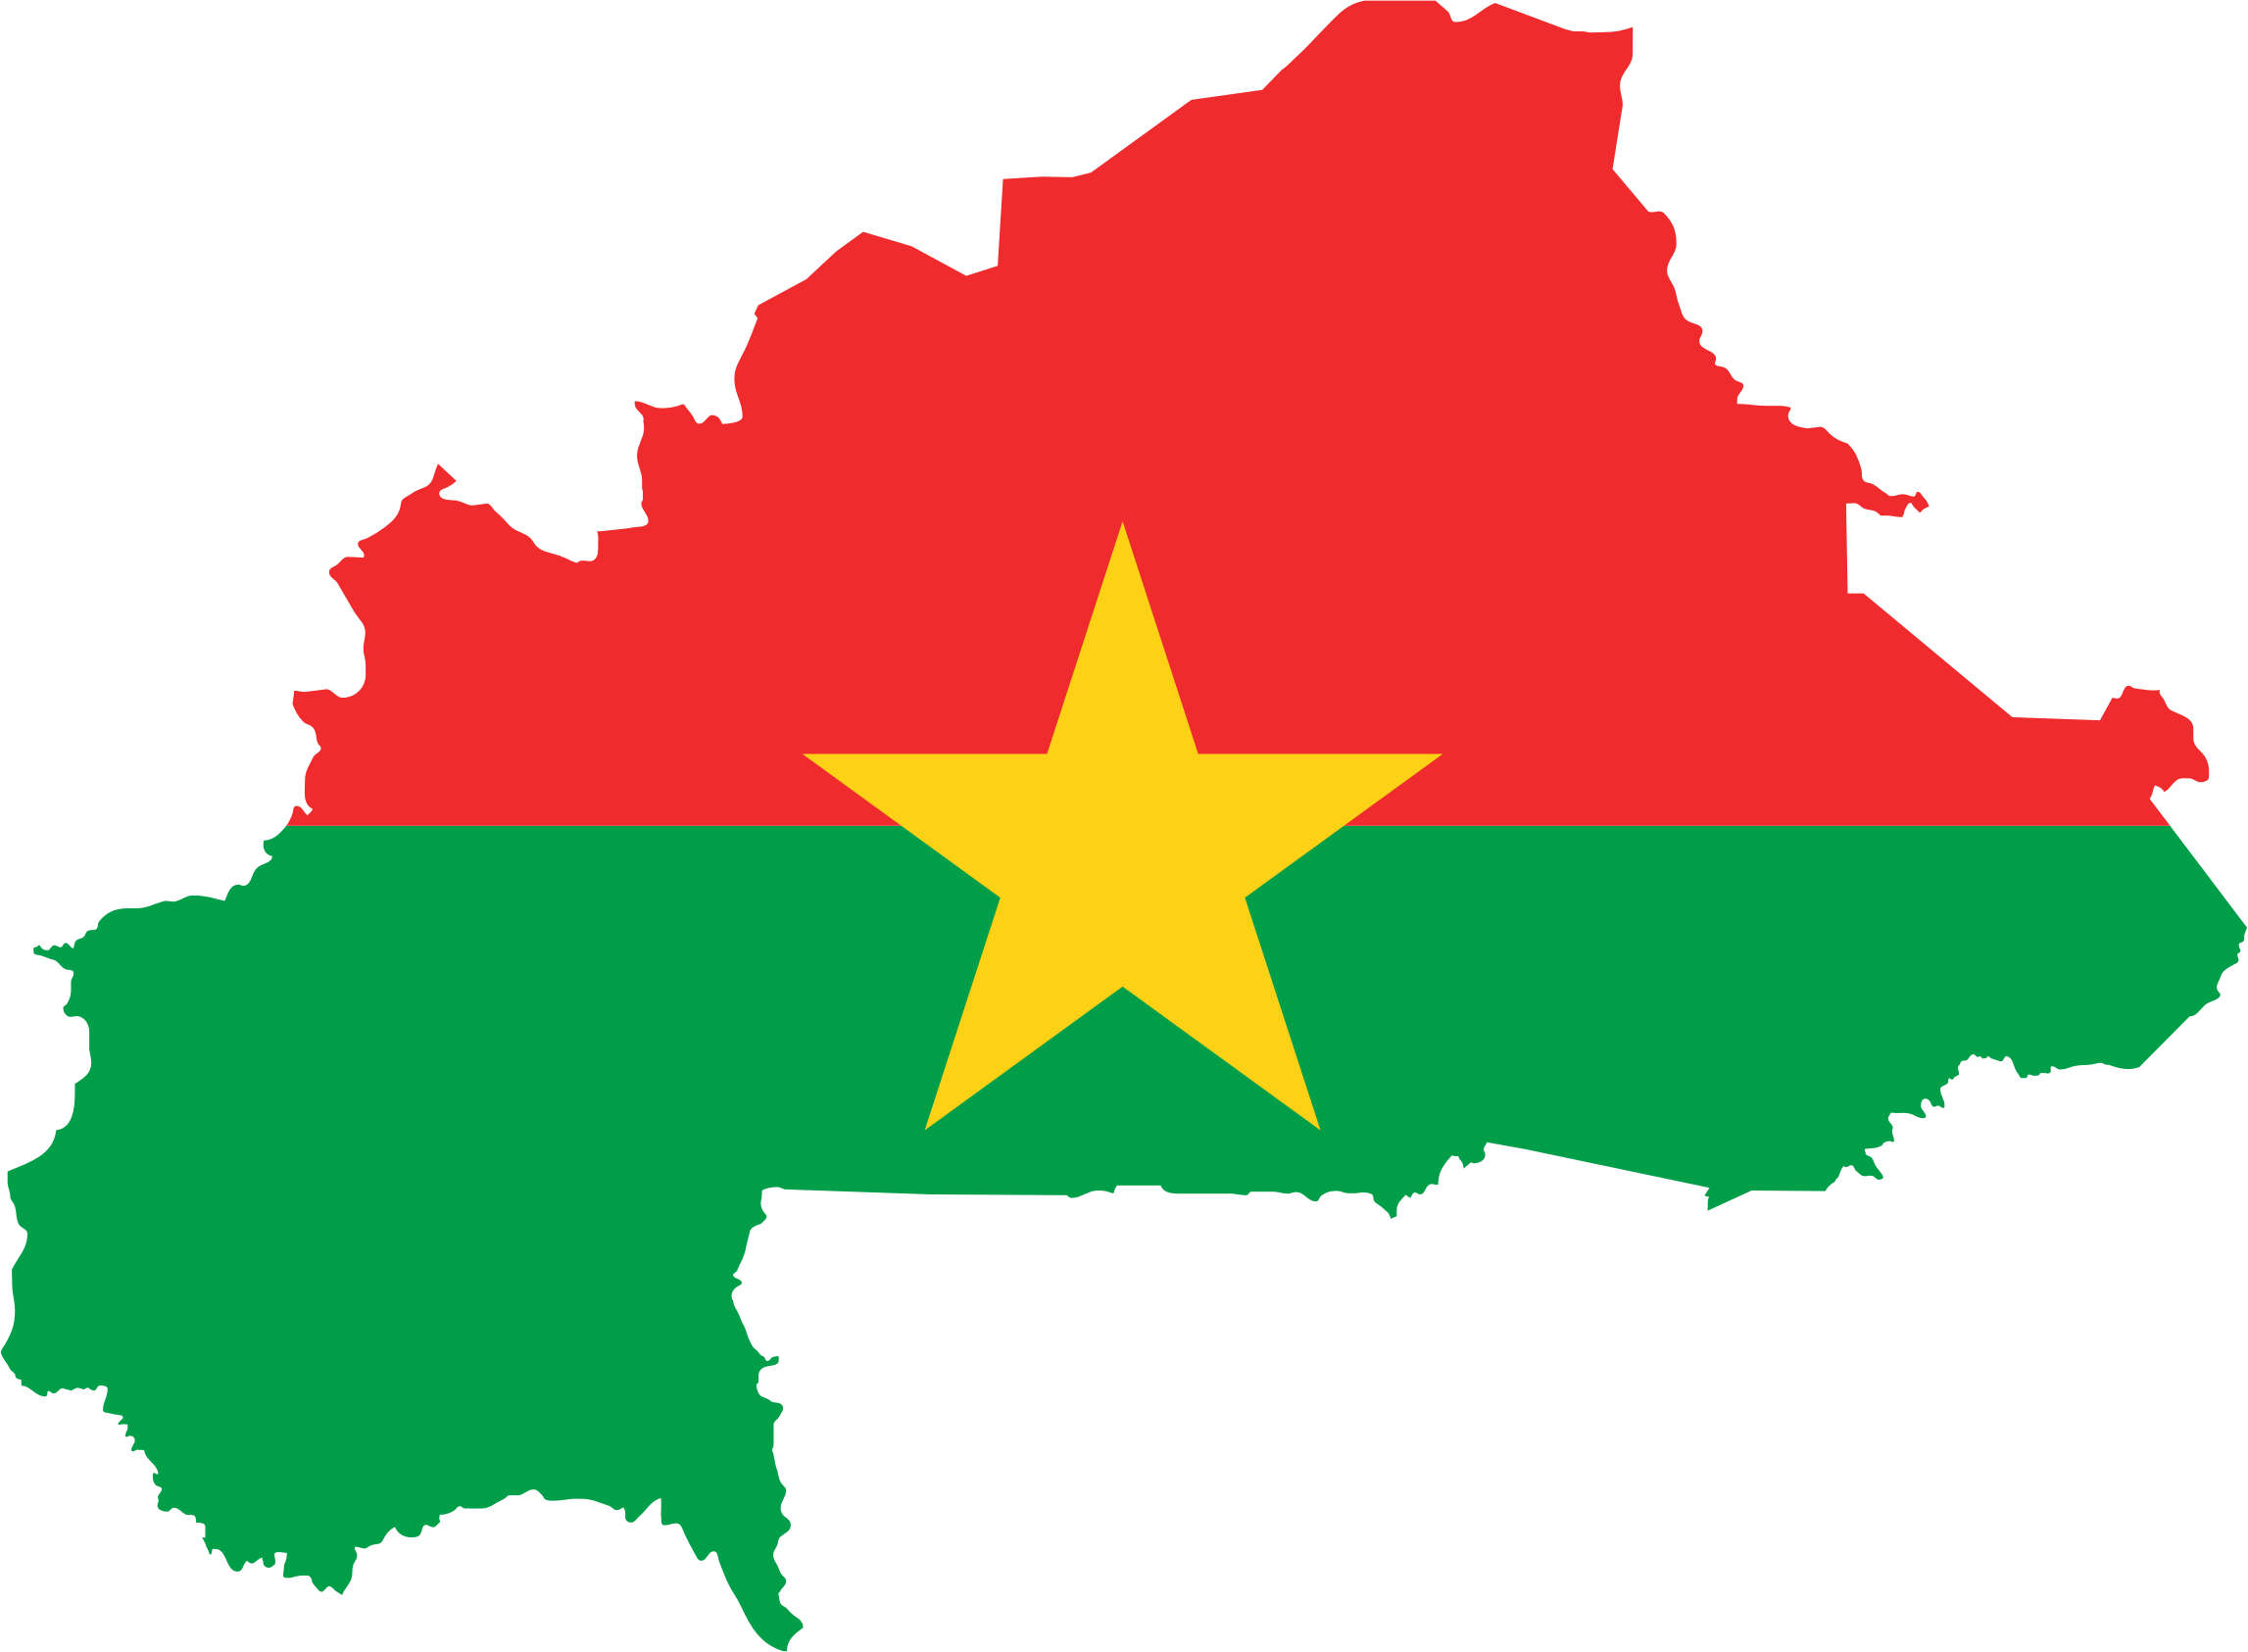 Burkina Faso Flag Map by GDJ